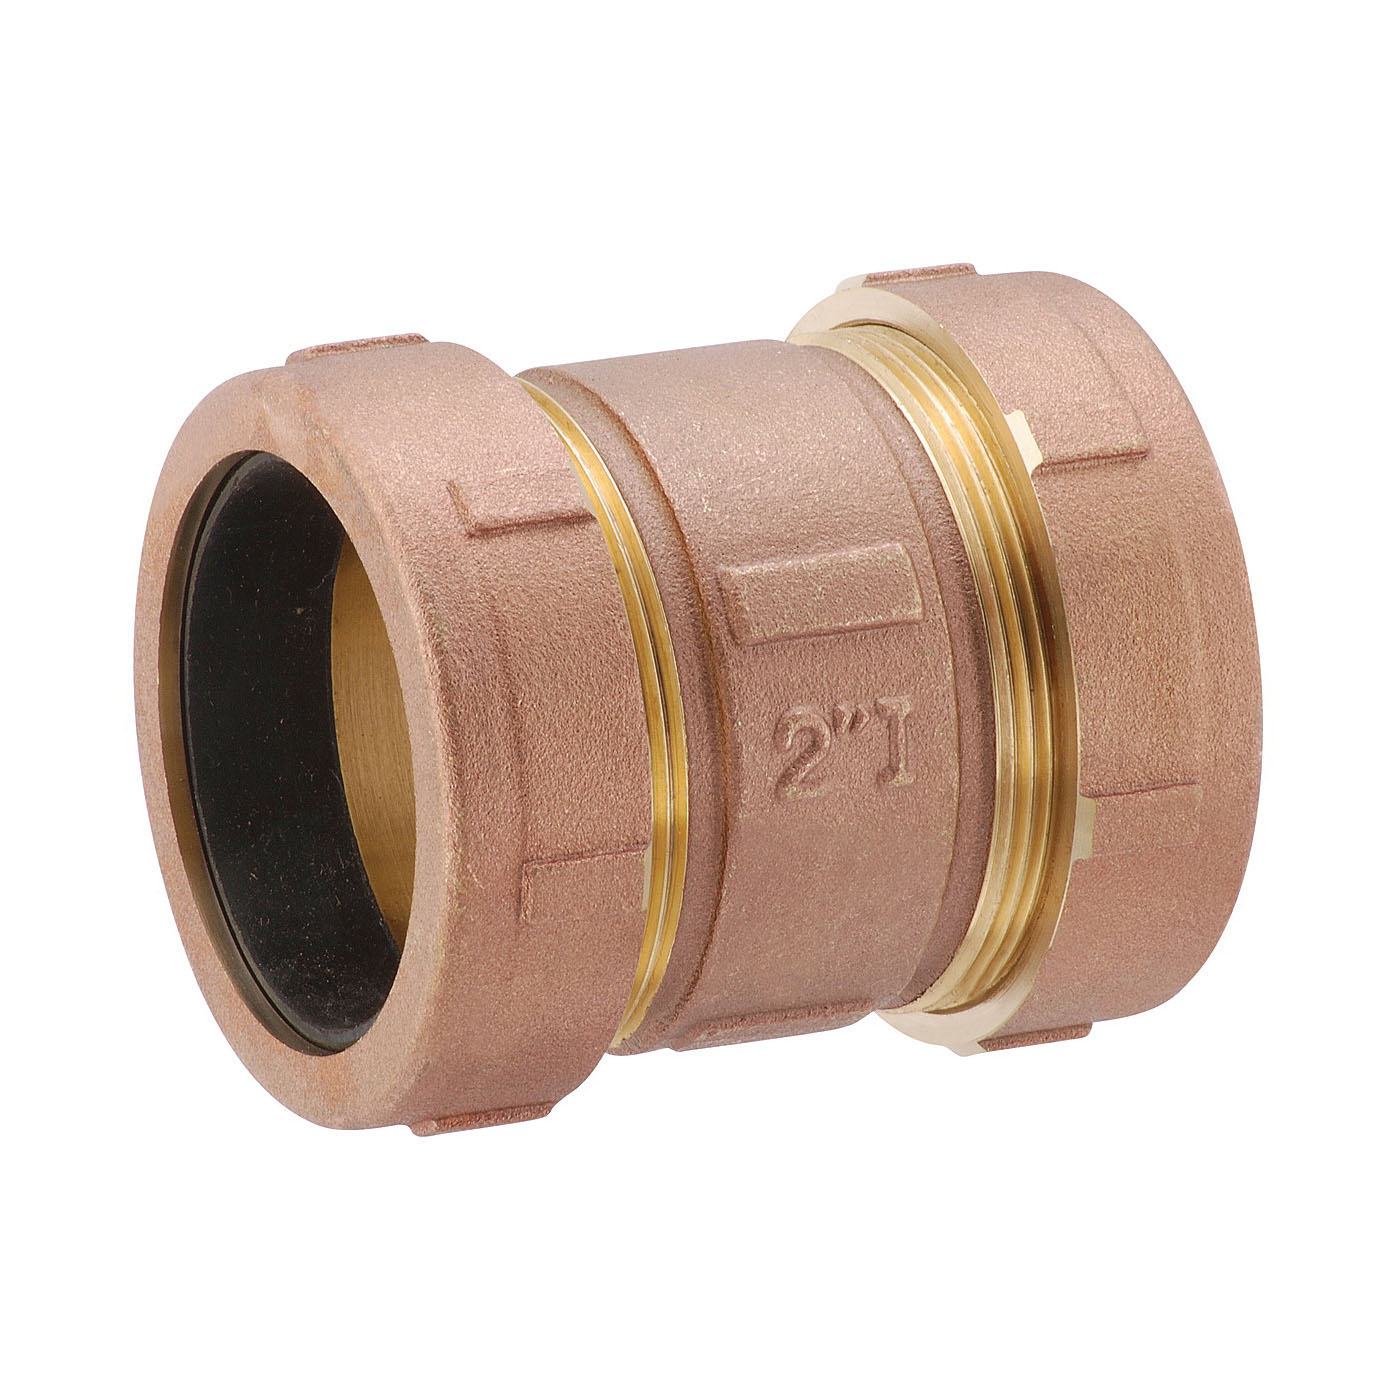 Matco-Norca™ 450T08LF Short Compression Coupling, 2 in, IPS x CTS, Brass